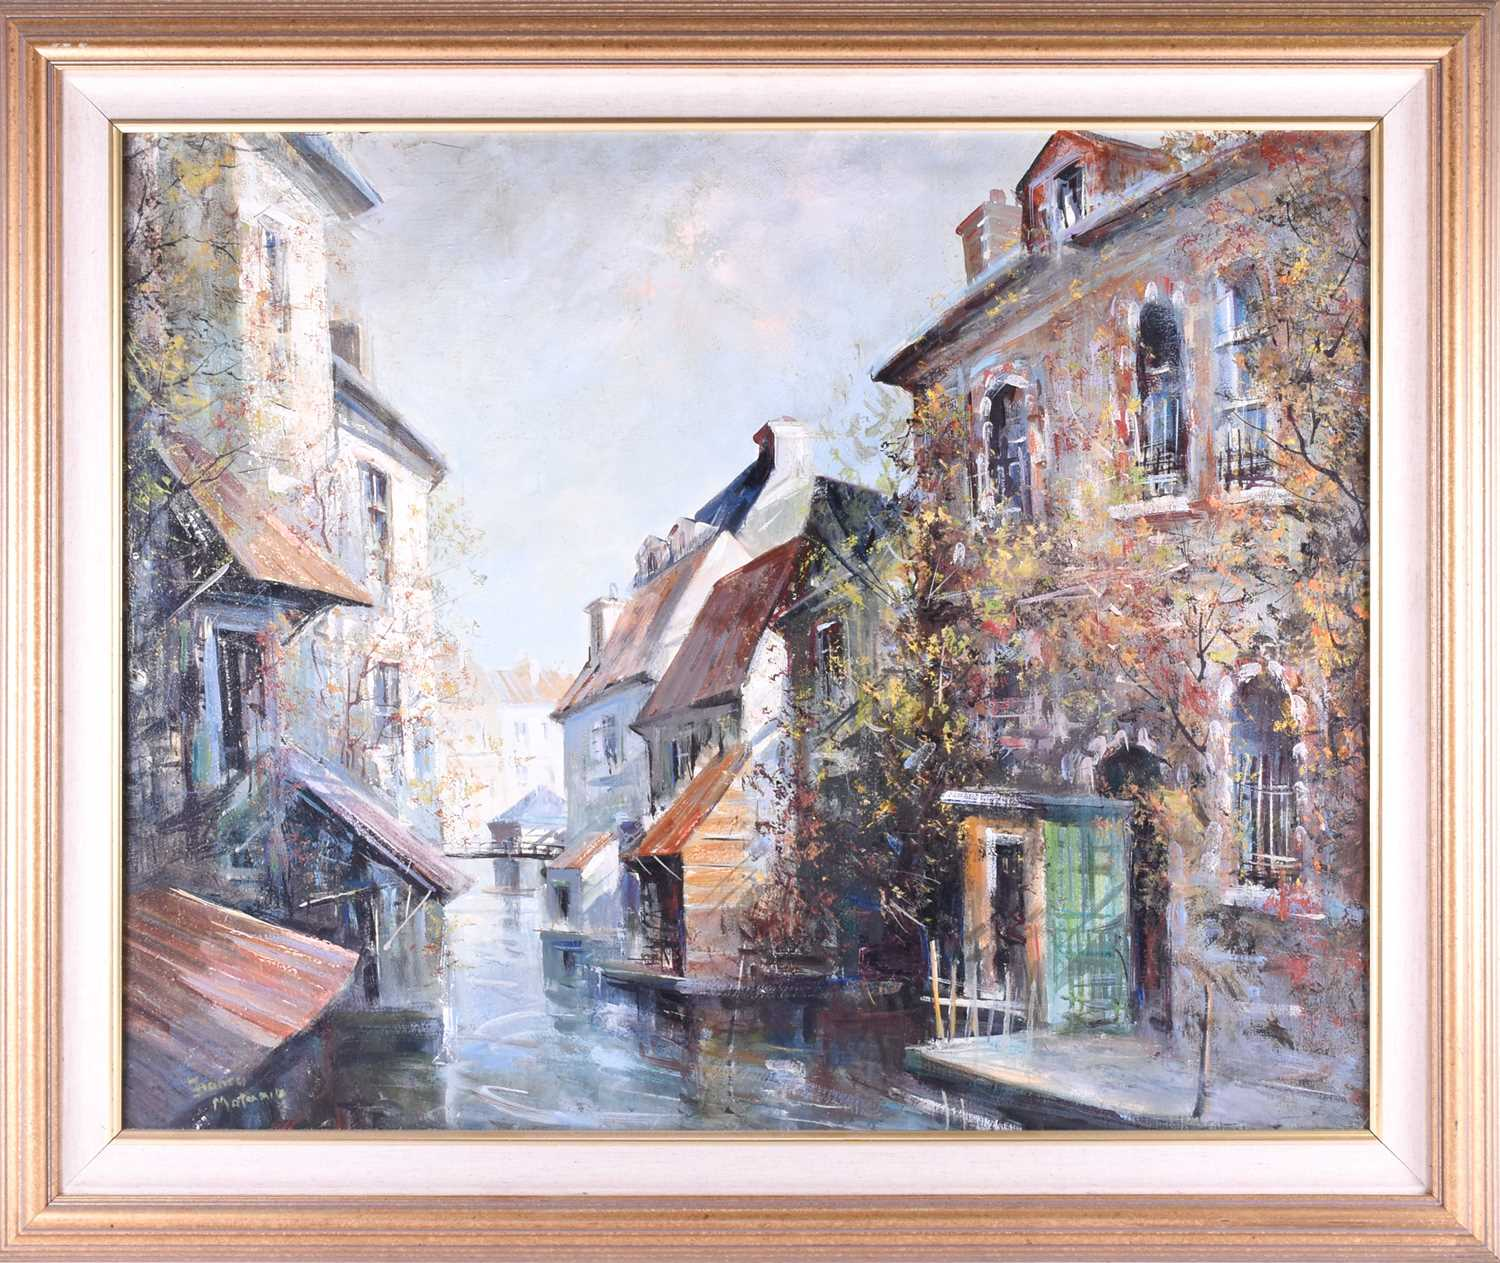 Lot 20 - Franco Matania (1922-2006) Italian/British, 'Canal Town No.2400', oil on panel, signed to lower left